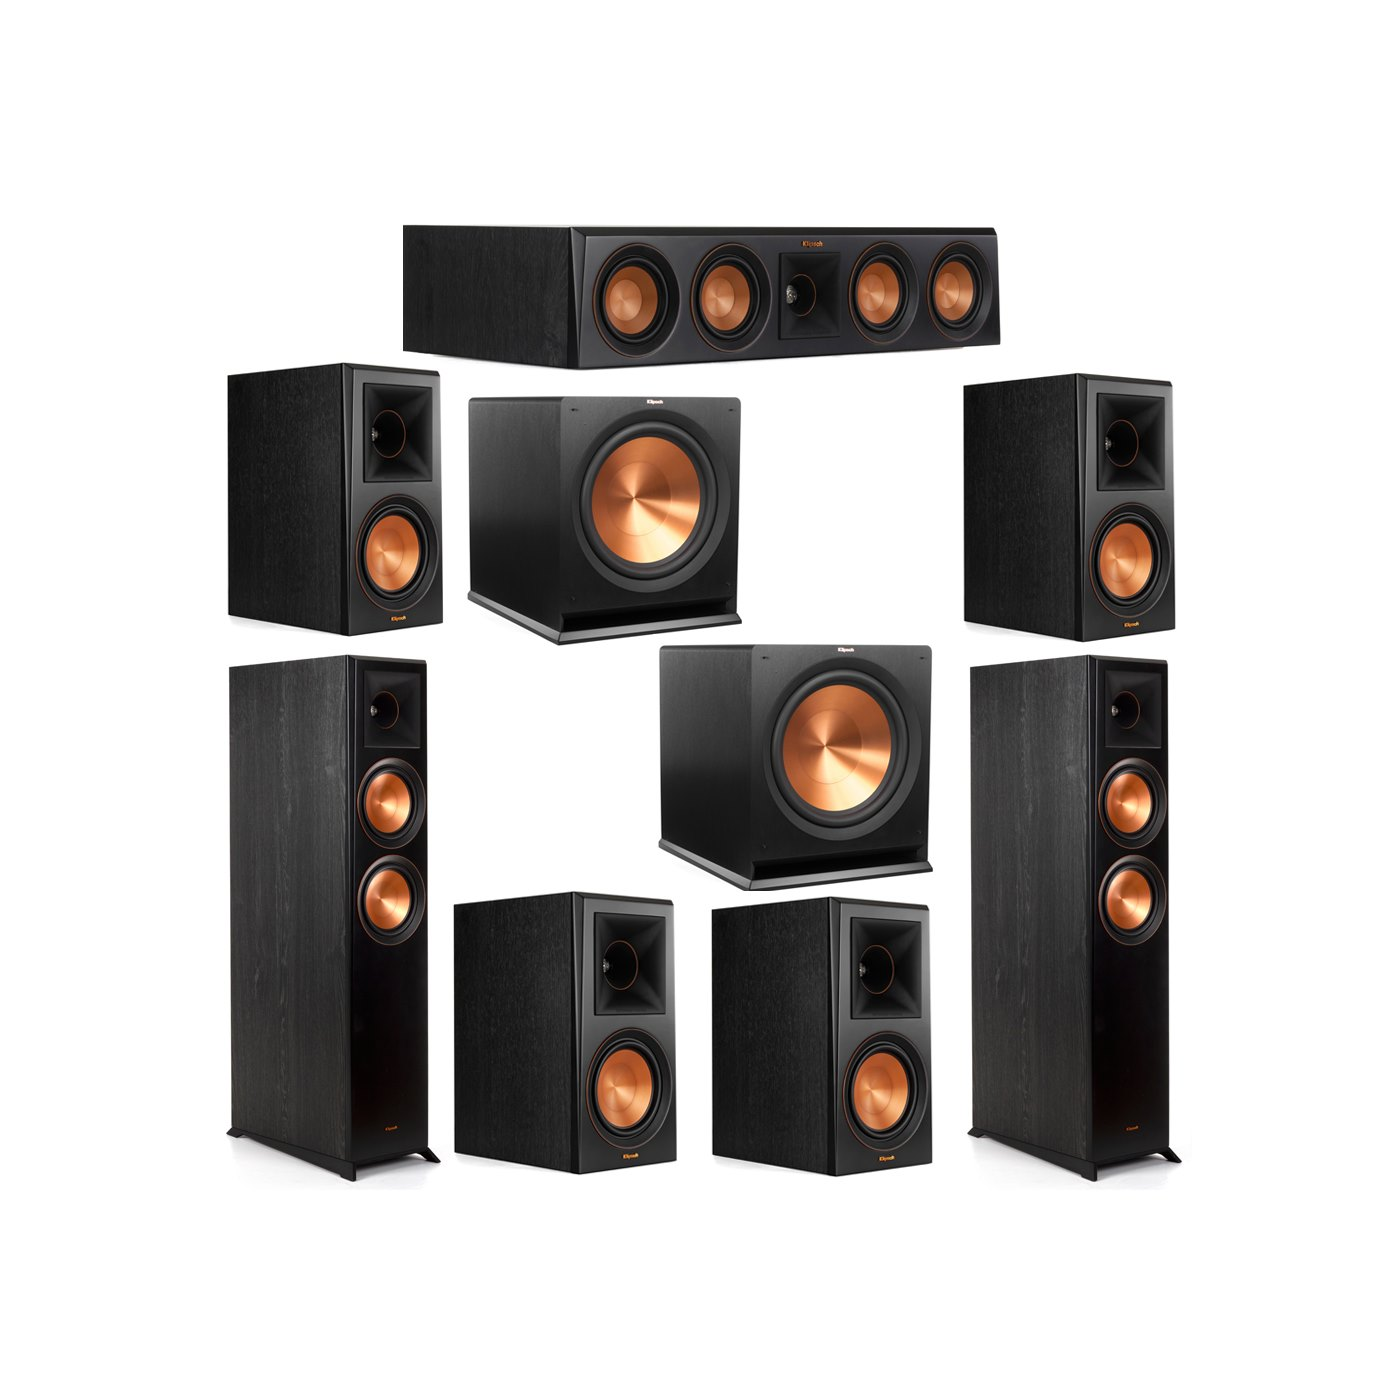 Klipsch 7.2 System with 2 RP-6000F Floorstanding Speakers, 1 Klipsch RP-404C Center Speaker, 4 Klipsch RP-600M Surround Speakers, 2 Klipsch R-115SW Subwoofers